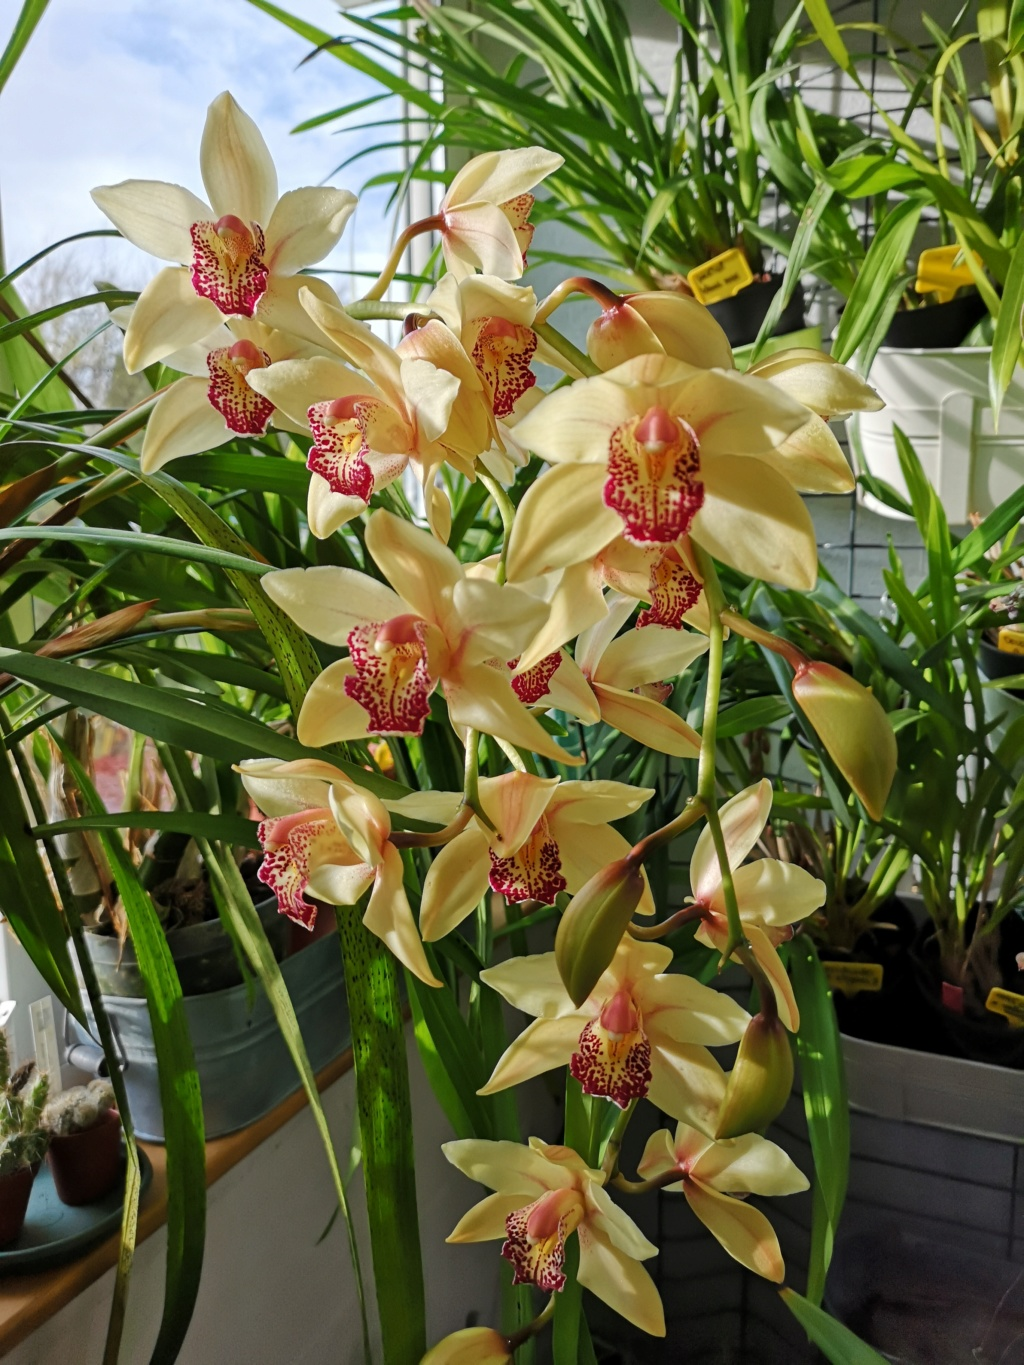 Cymbidium jaune labelle rouge Img_2765